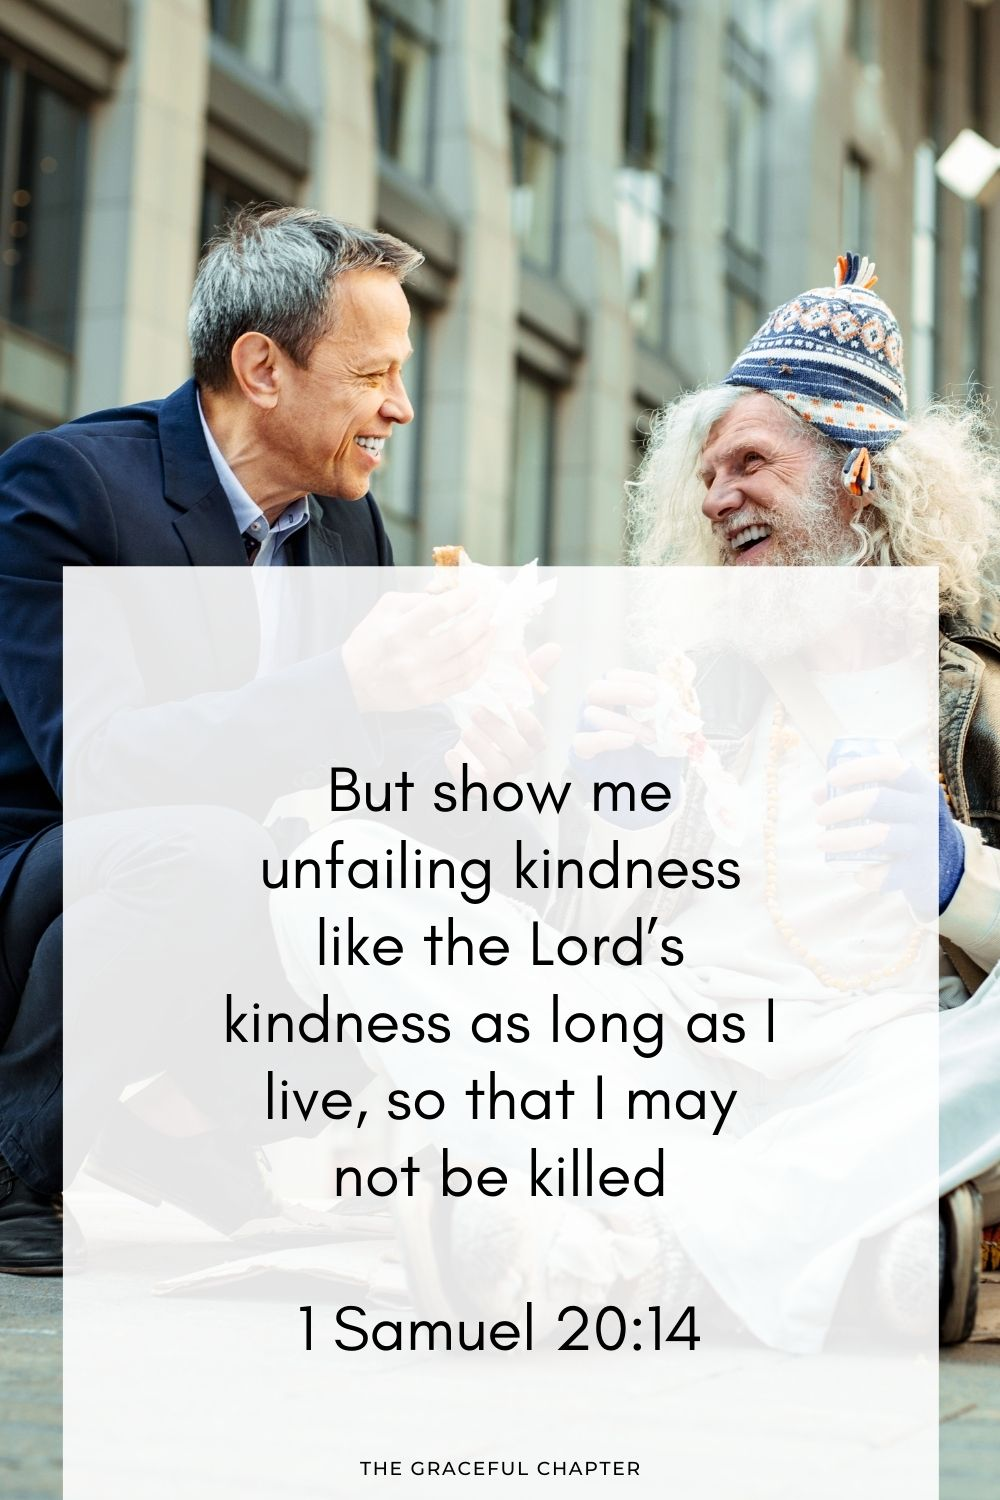 But show me unfailing kindness like the Lord's kindness as long as I live, so that I may not be killed 1 Samuel 20:14